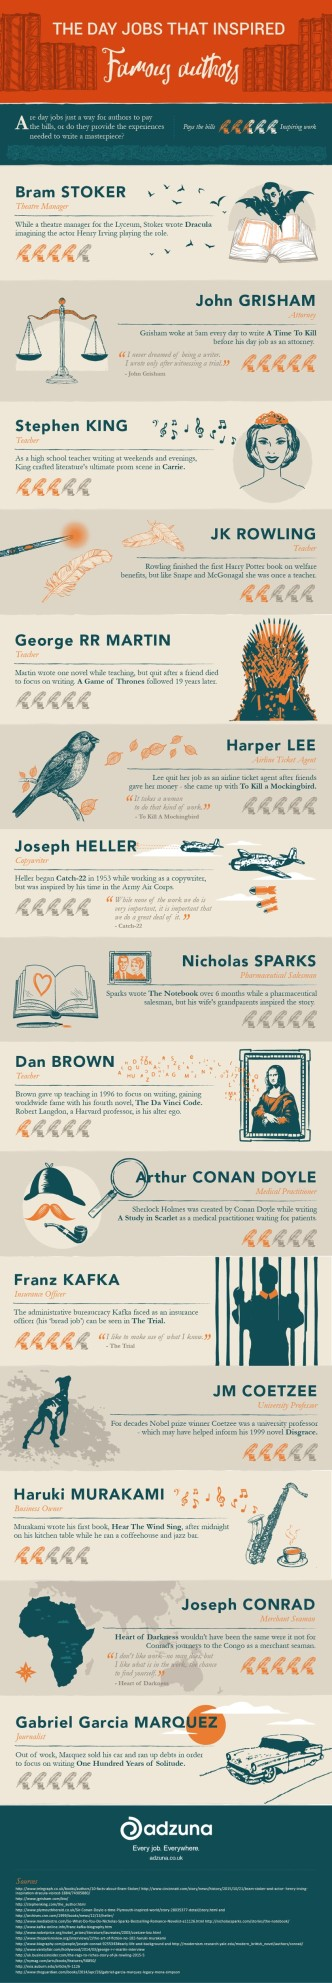 Day jobs that inspired famous authors #infographic